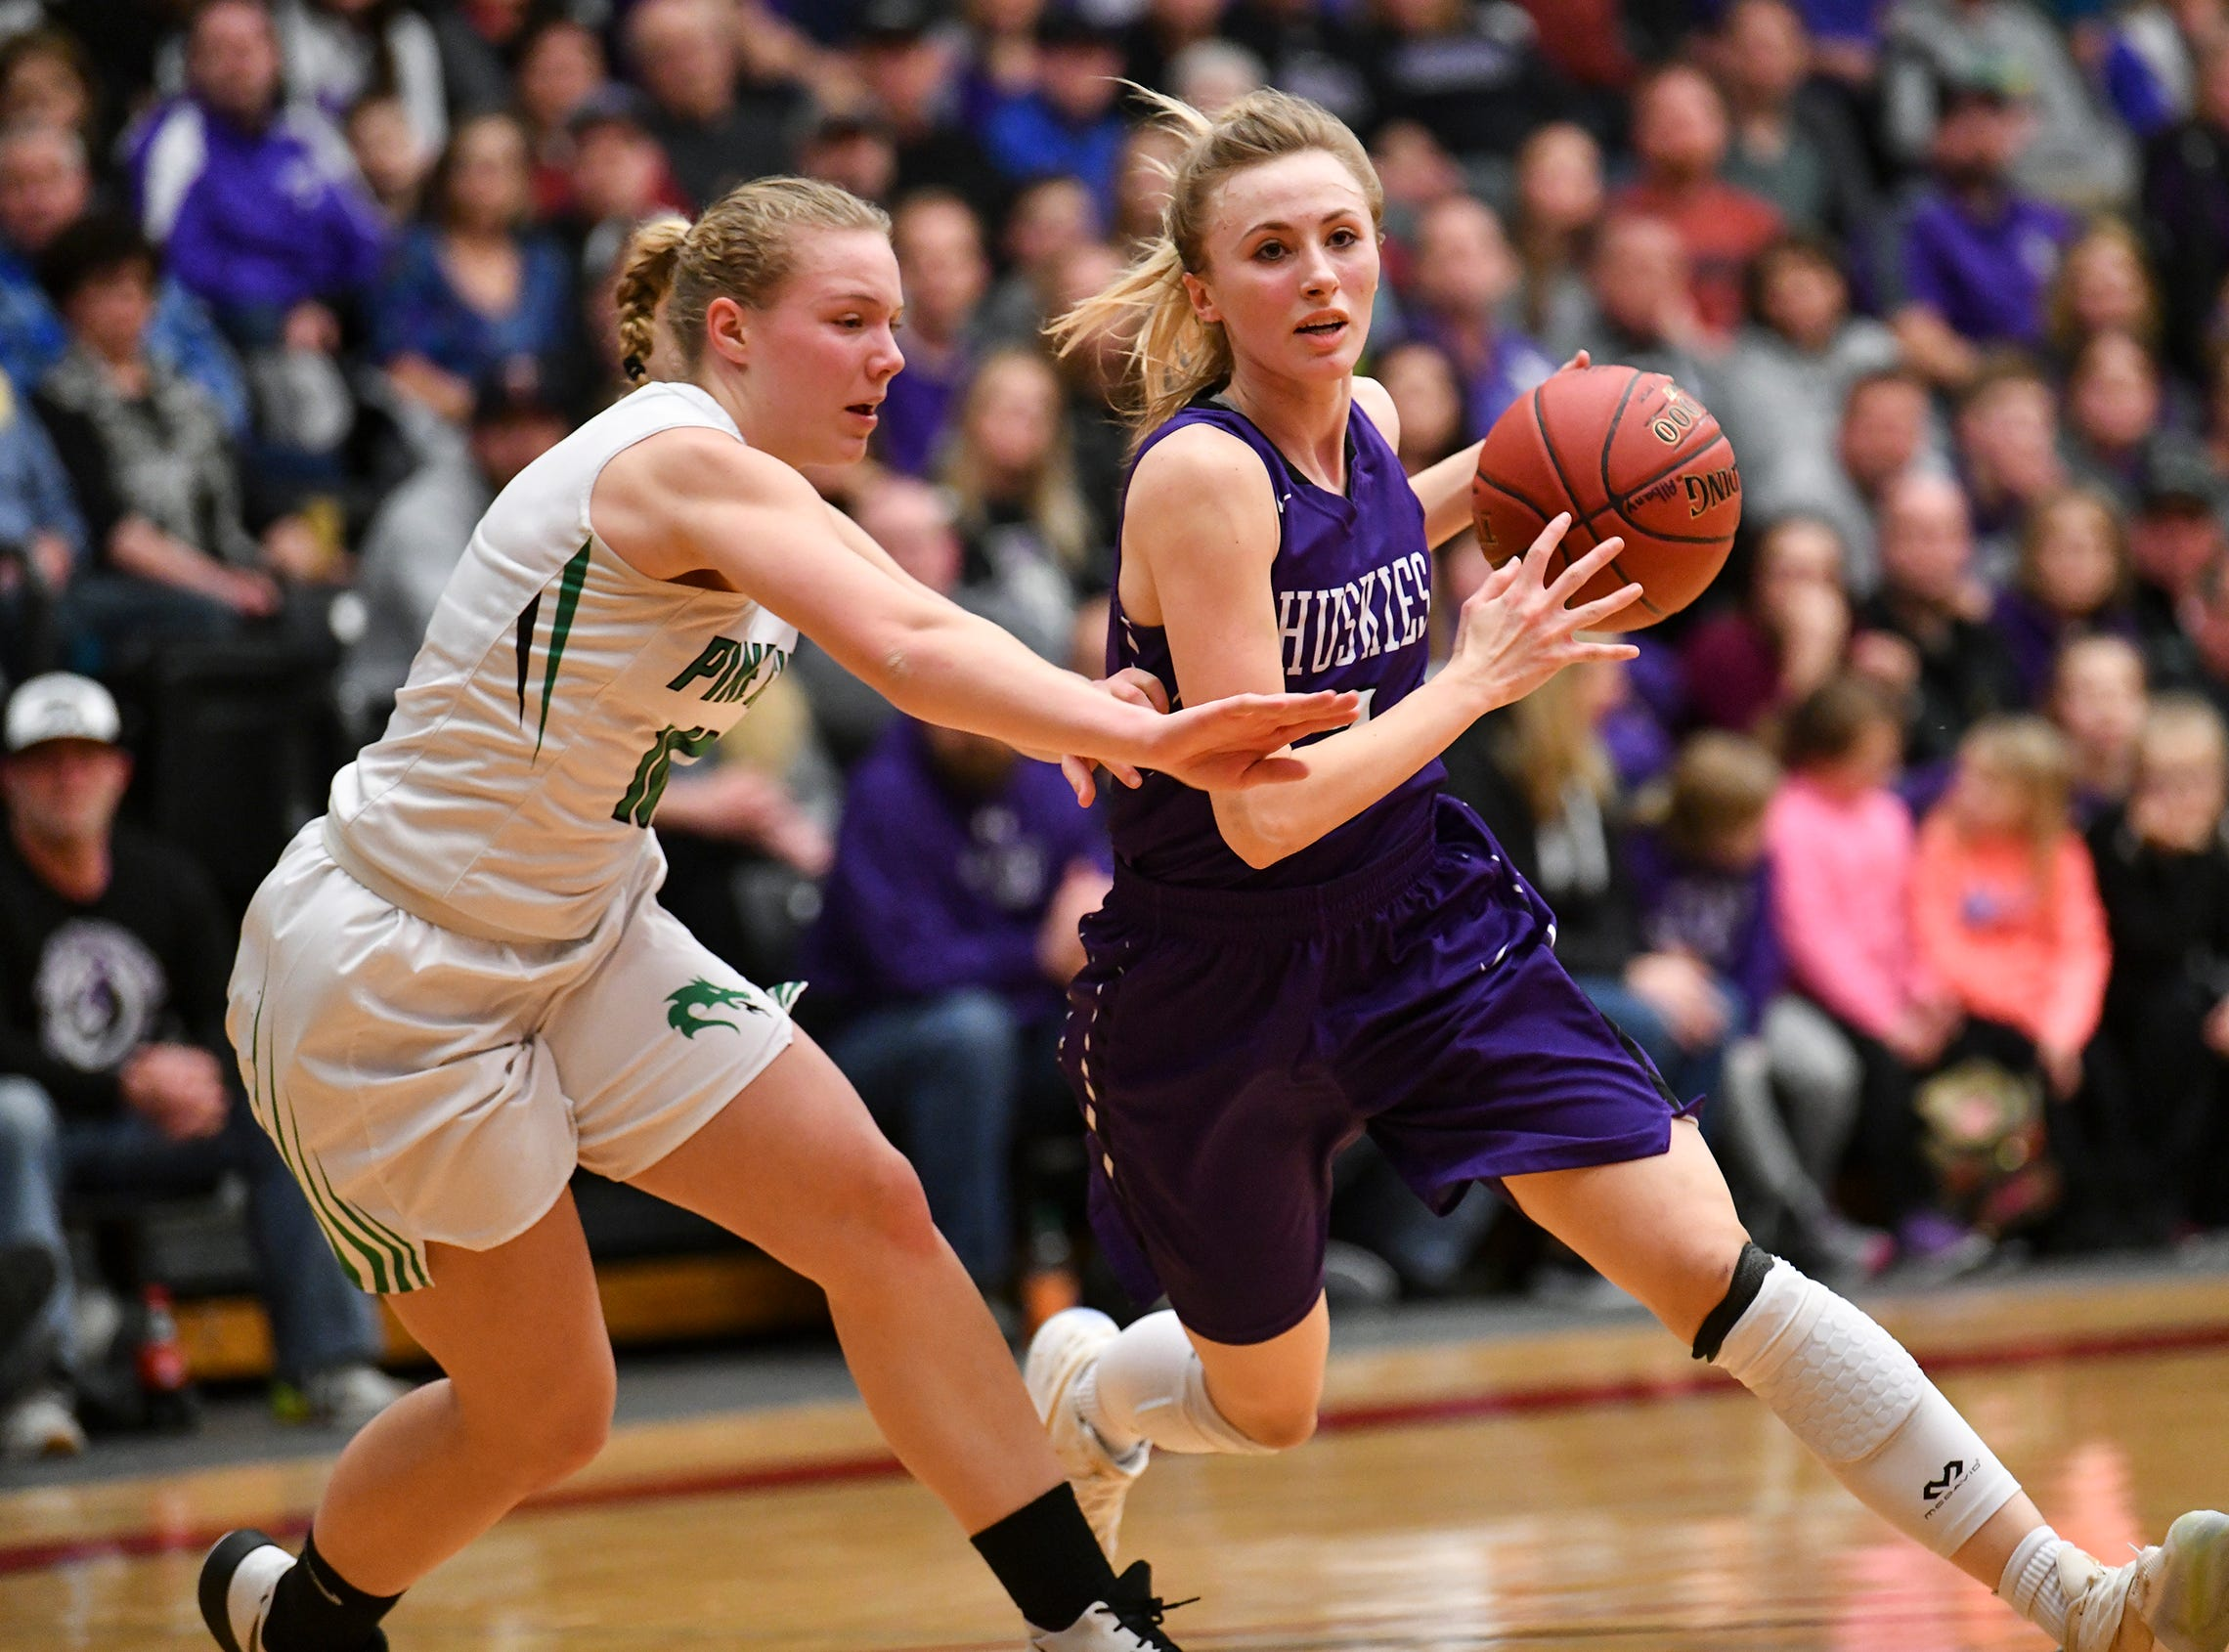 Albany's Amanda Kollodge works with the ball during the Section 6-2A championship game against Pine City Friday, March 8, at Halenbeck Hall in St. Cloud.